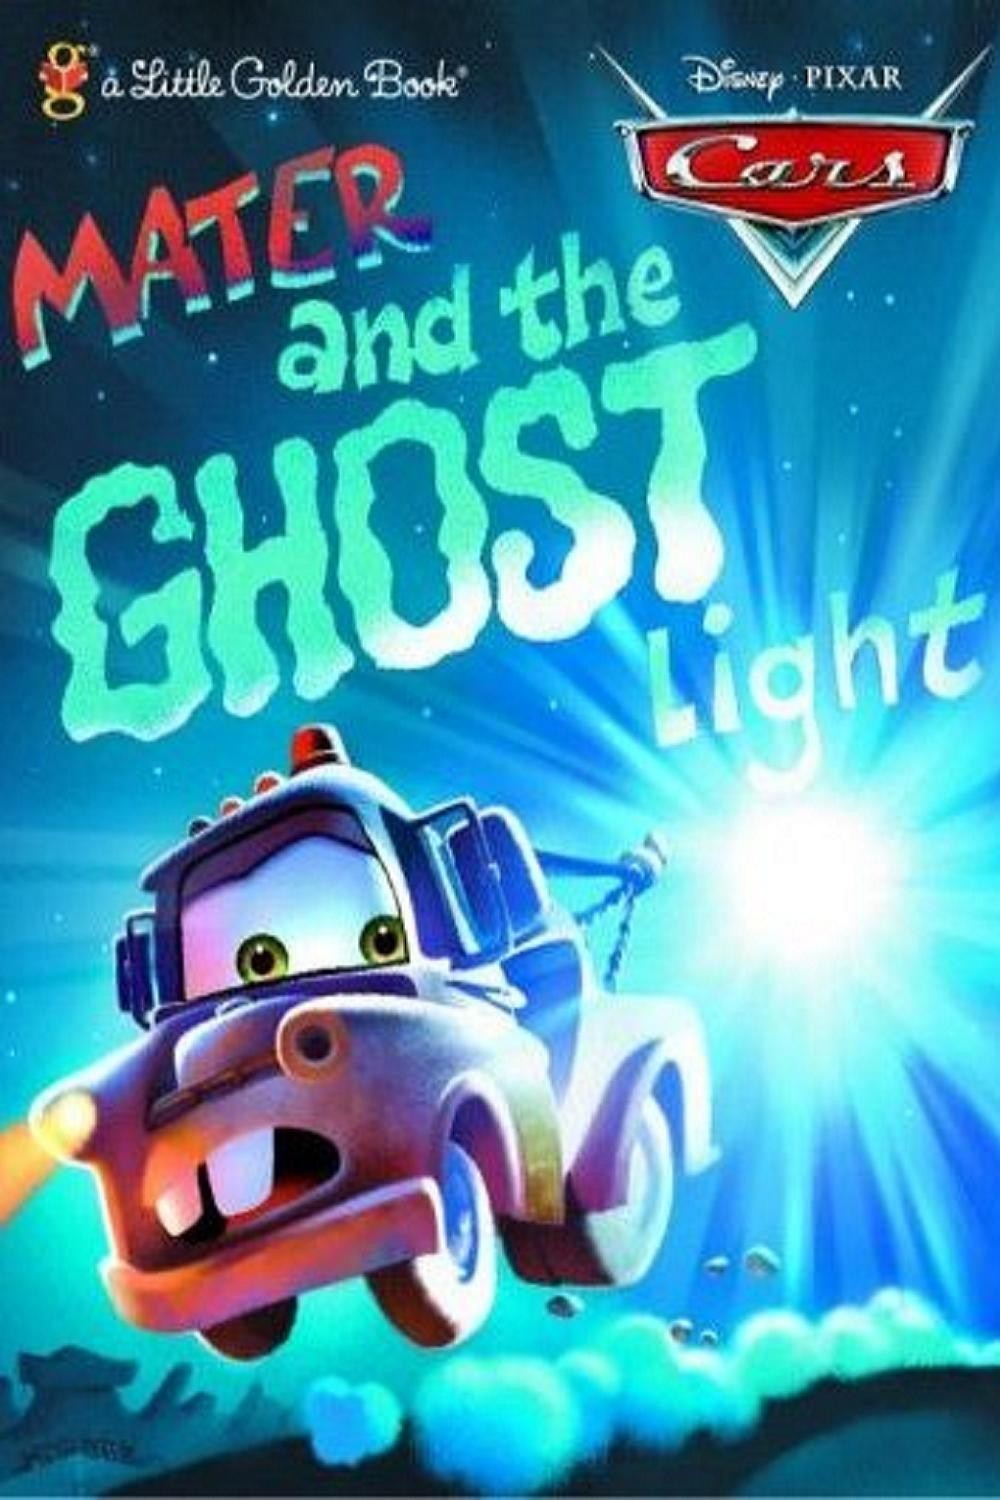 Mater and the Ghostlight (2006) (Short movie)